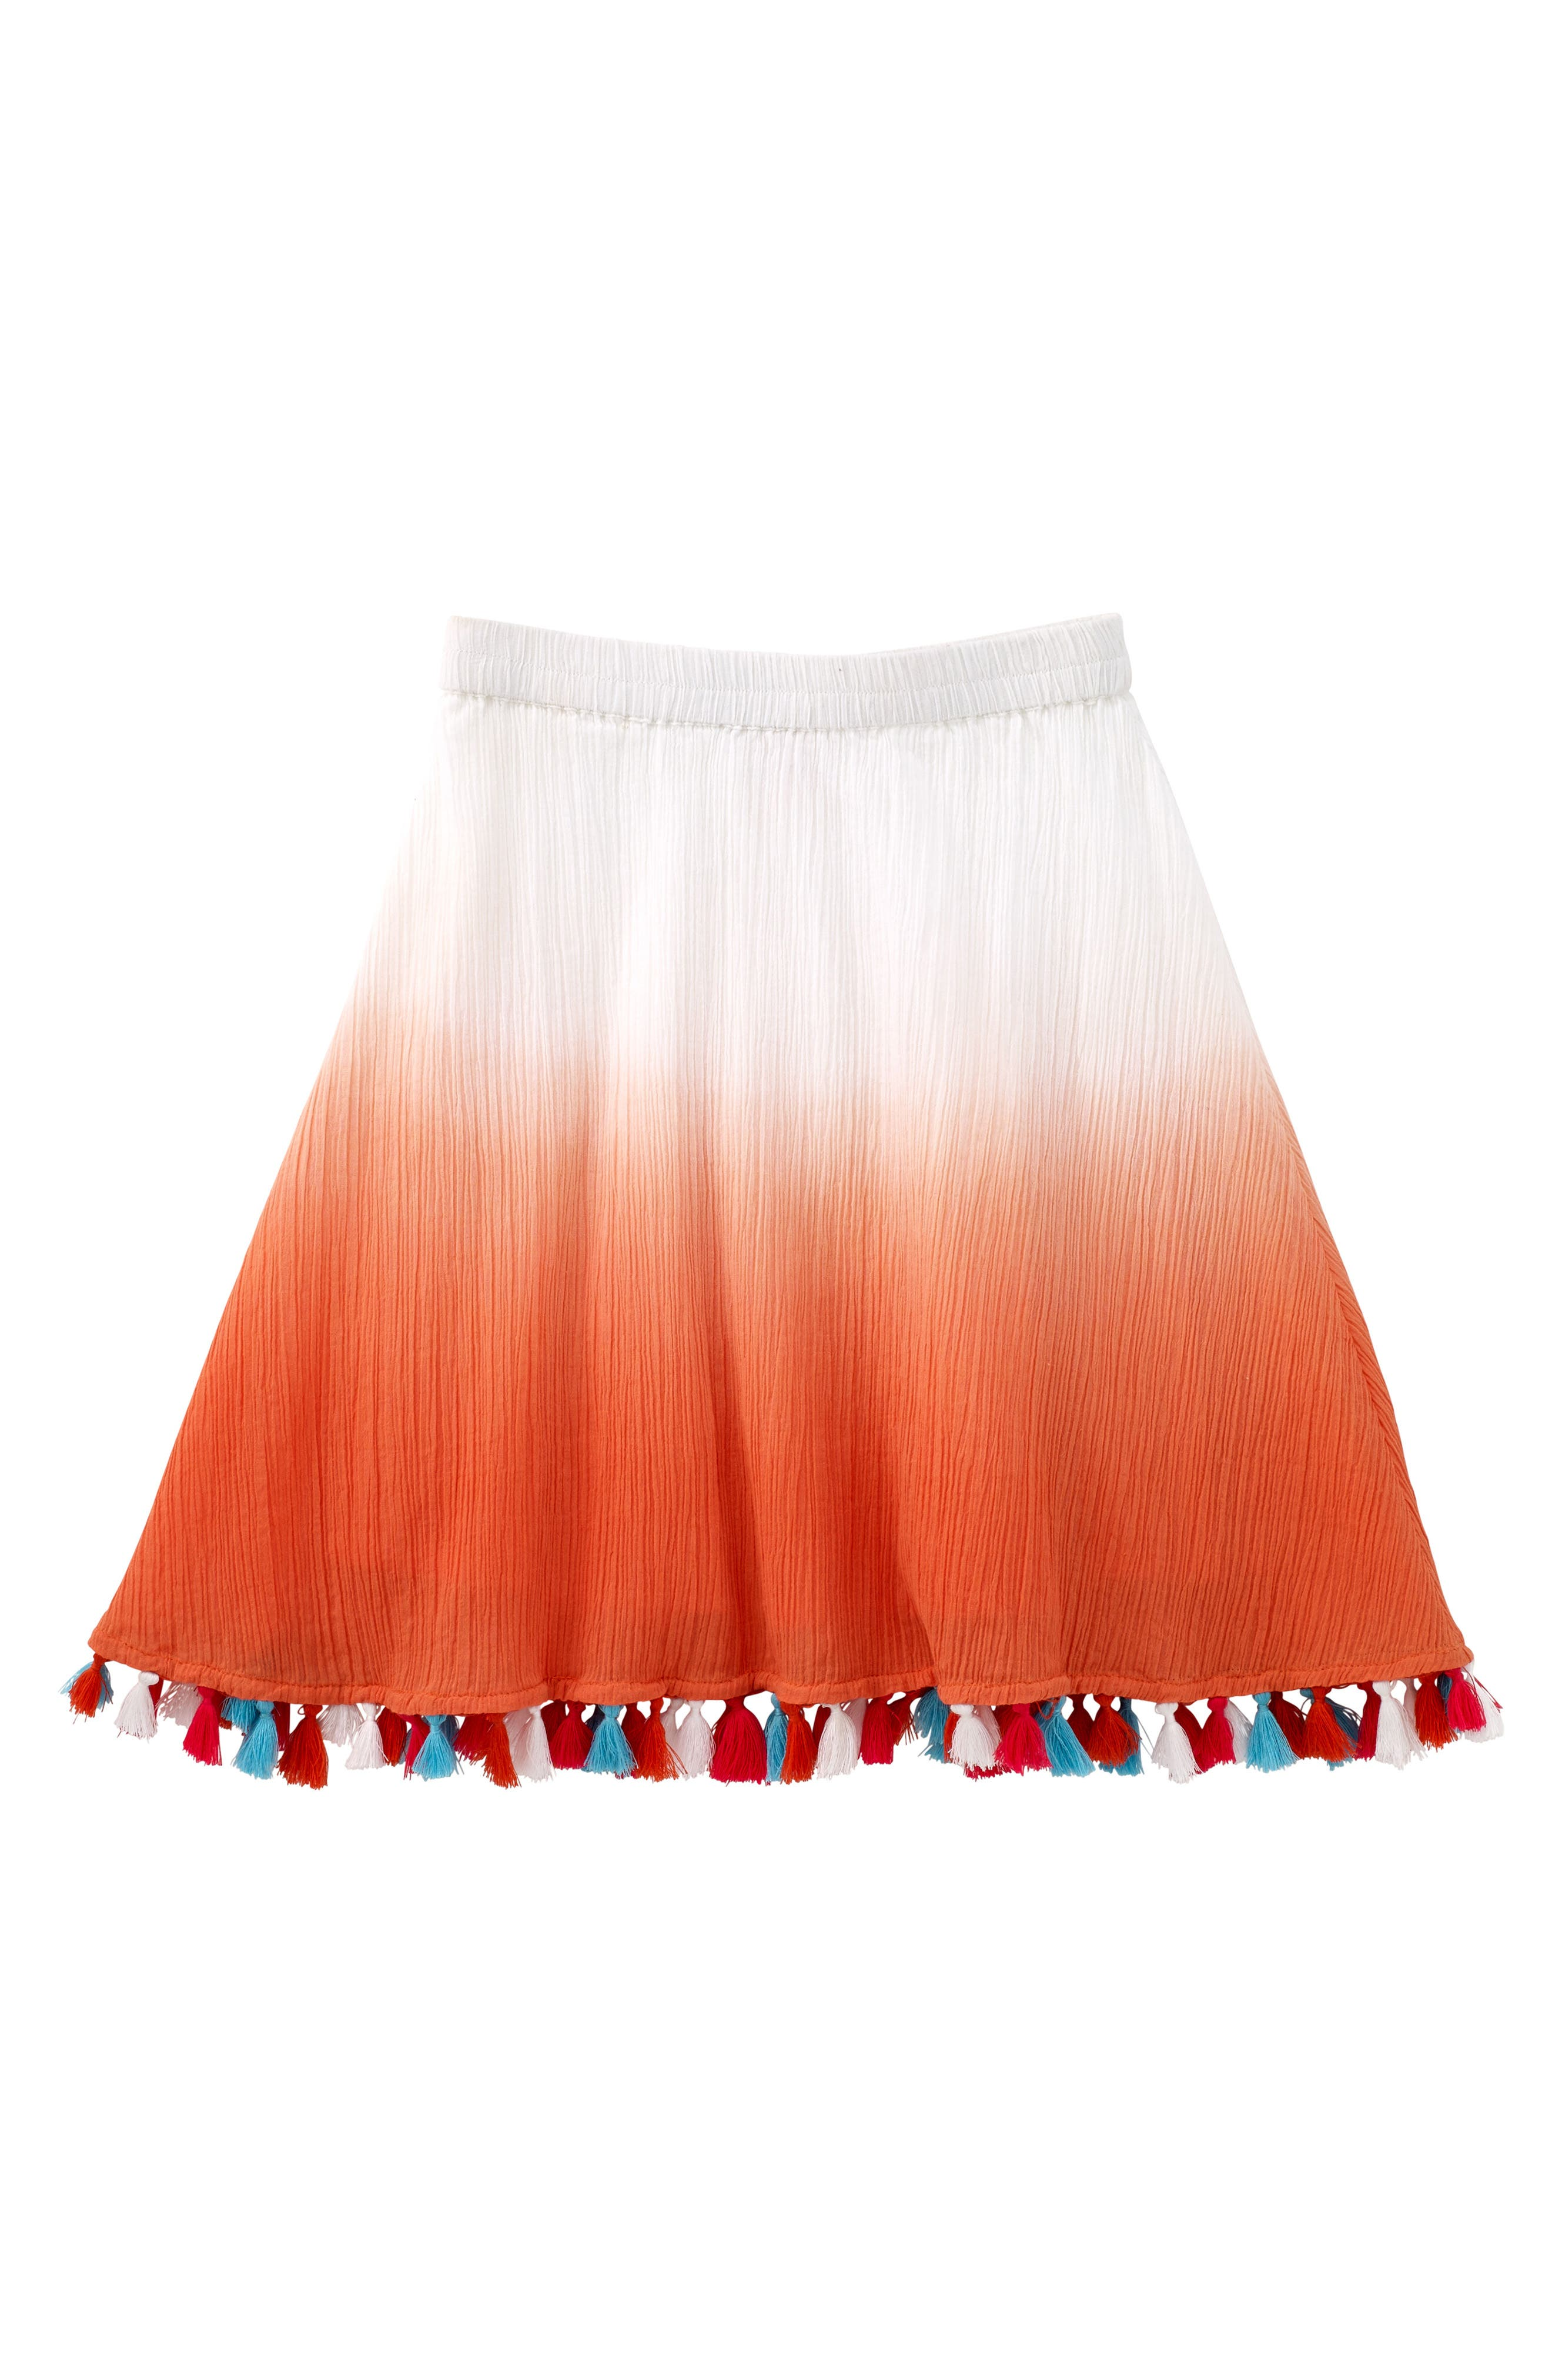 Dip Dye Tassel Skirt,                             Main thumbnail 1, color,                             600